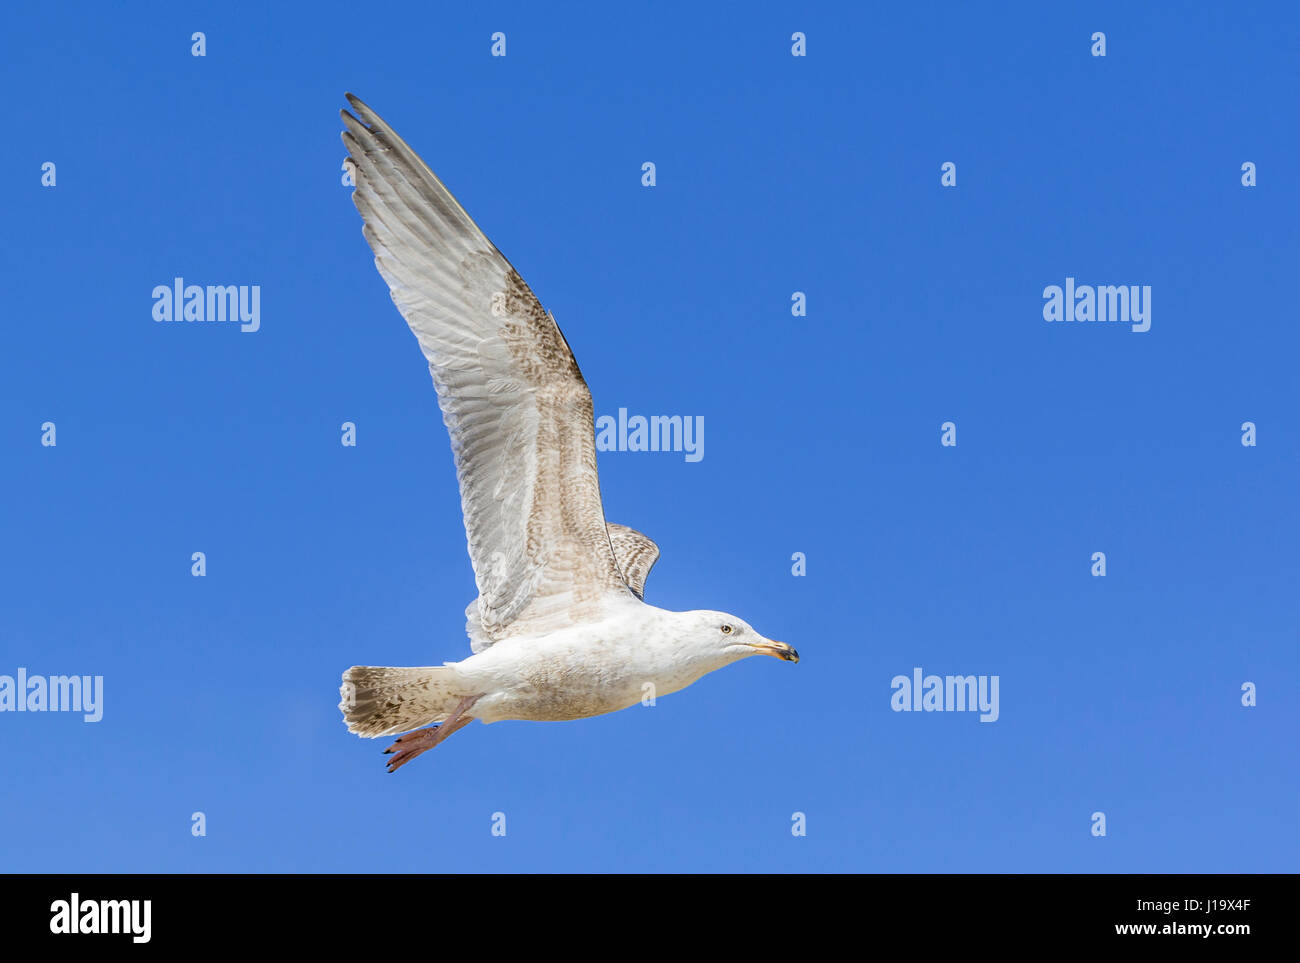 Seagull flying with its wings stretched upwards against blue sky. - Stock Image